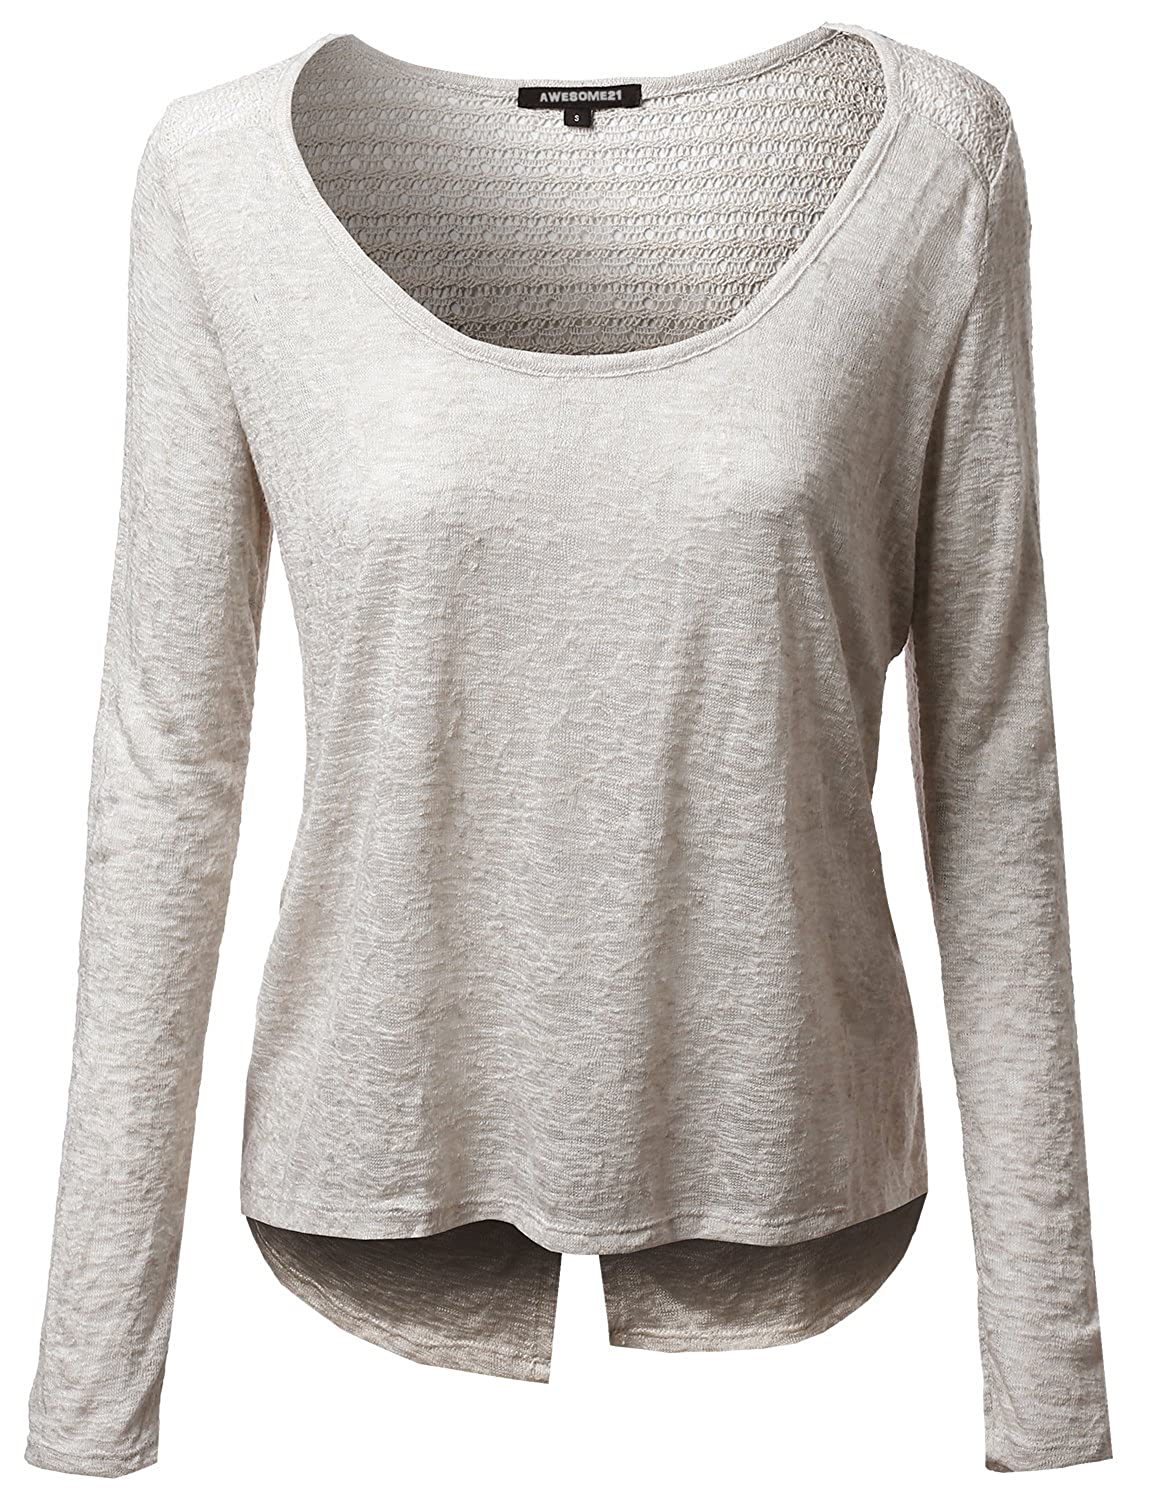 Awesome21 Women's Super Cute Lace Knit Long Sleeve Back open Top